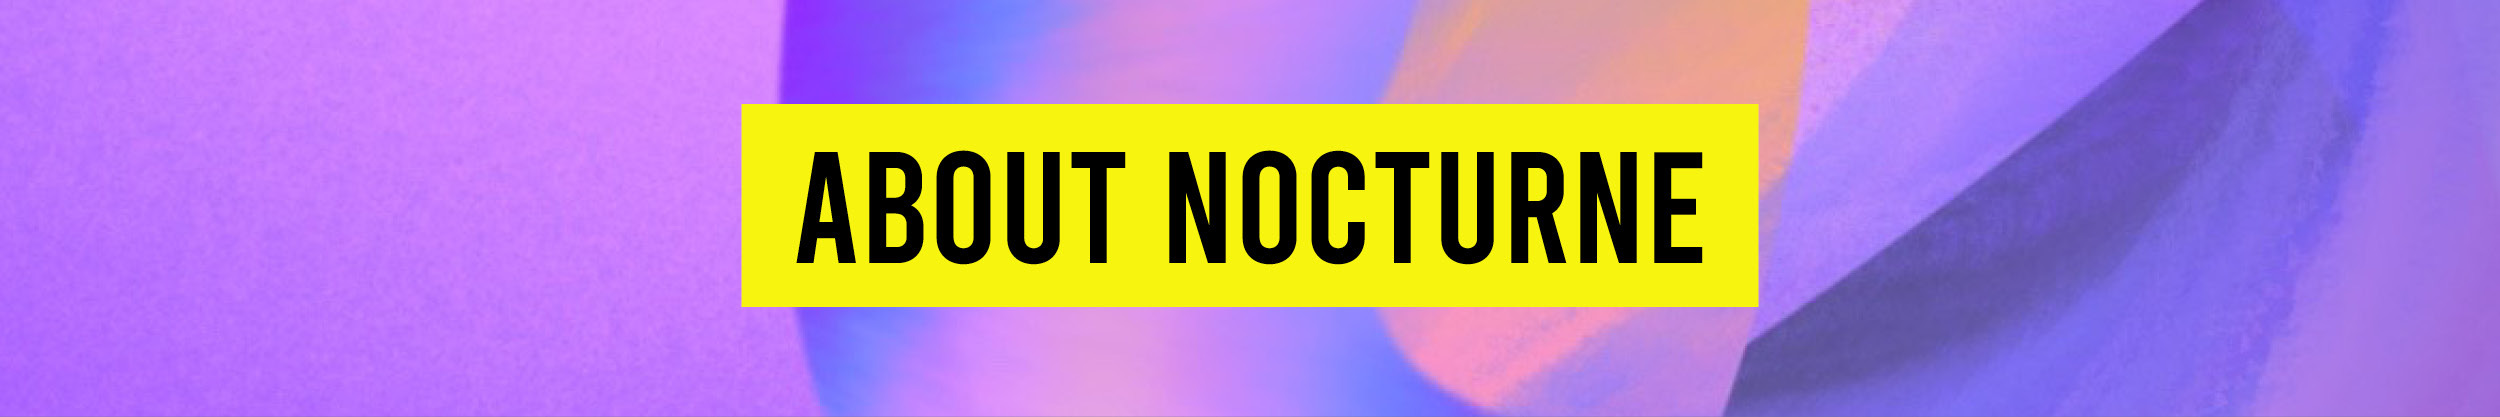 about nocturne